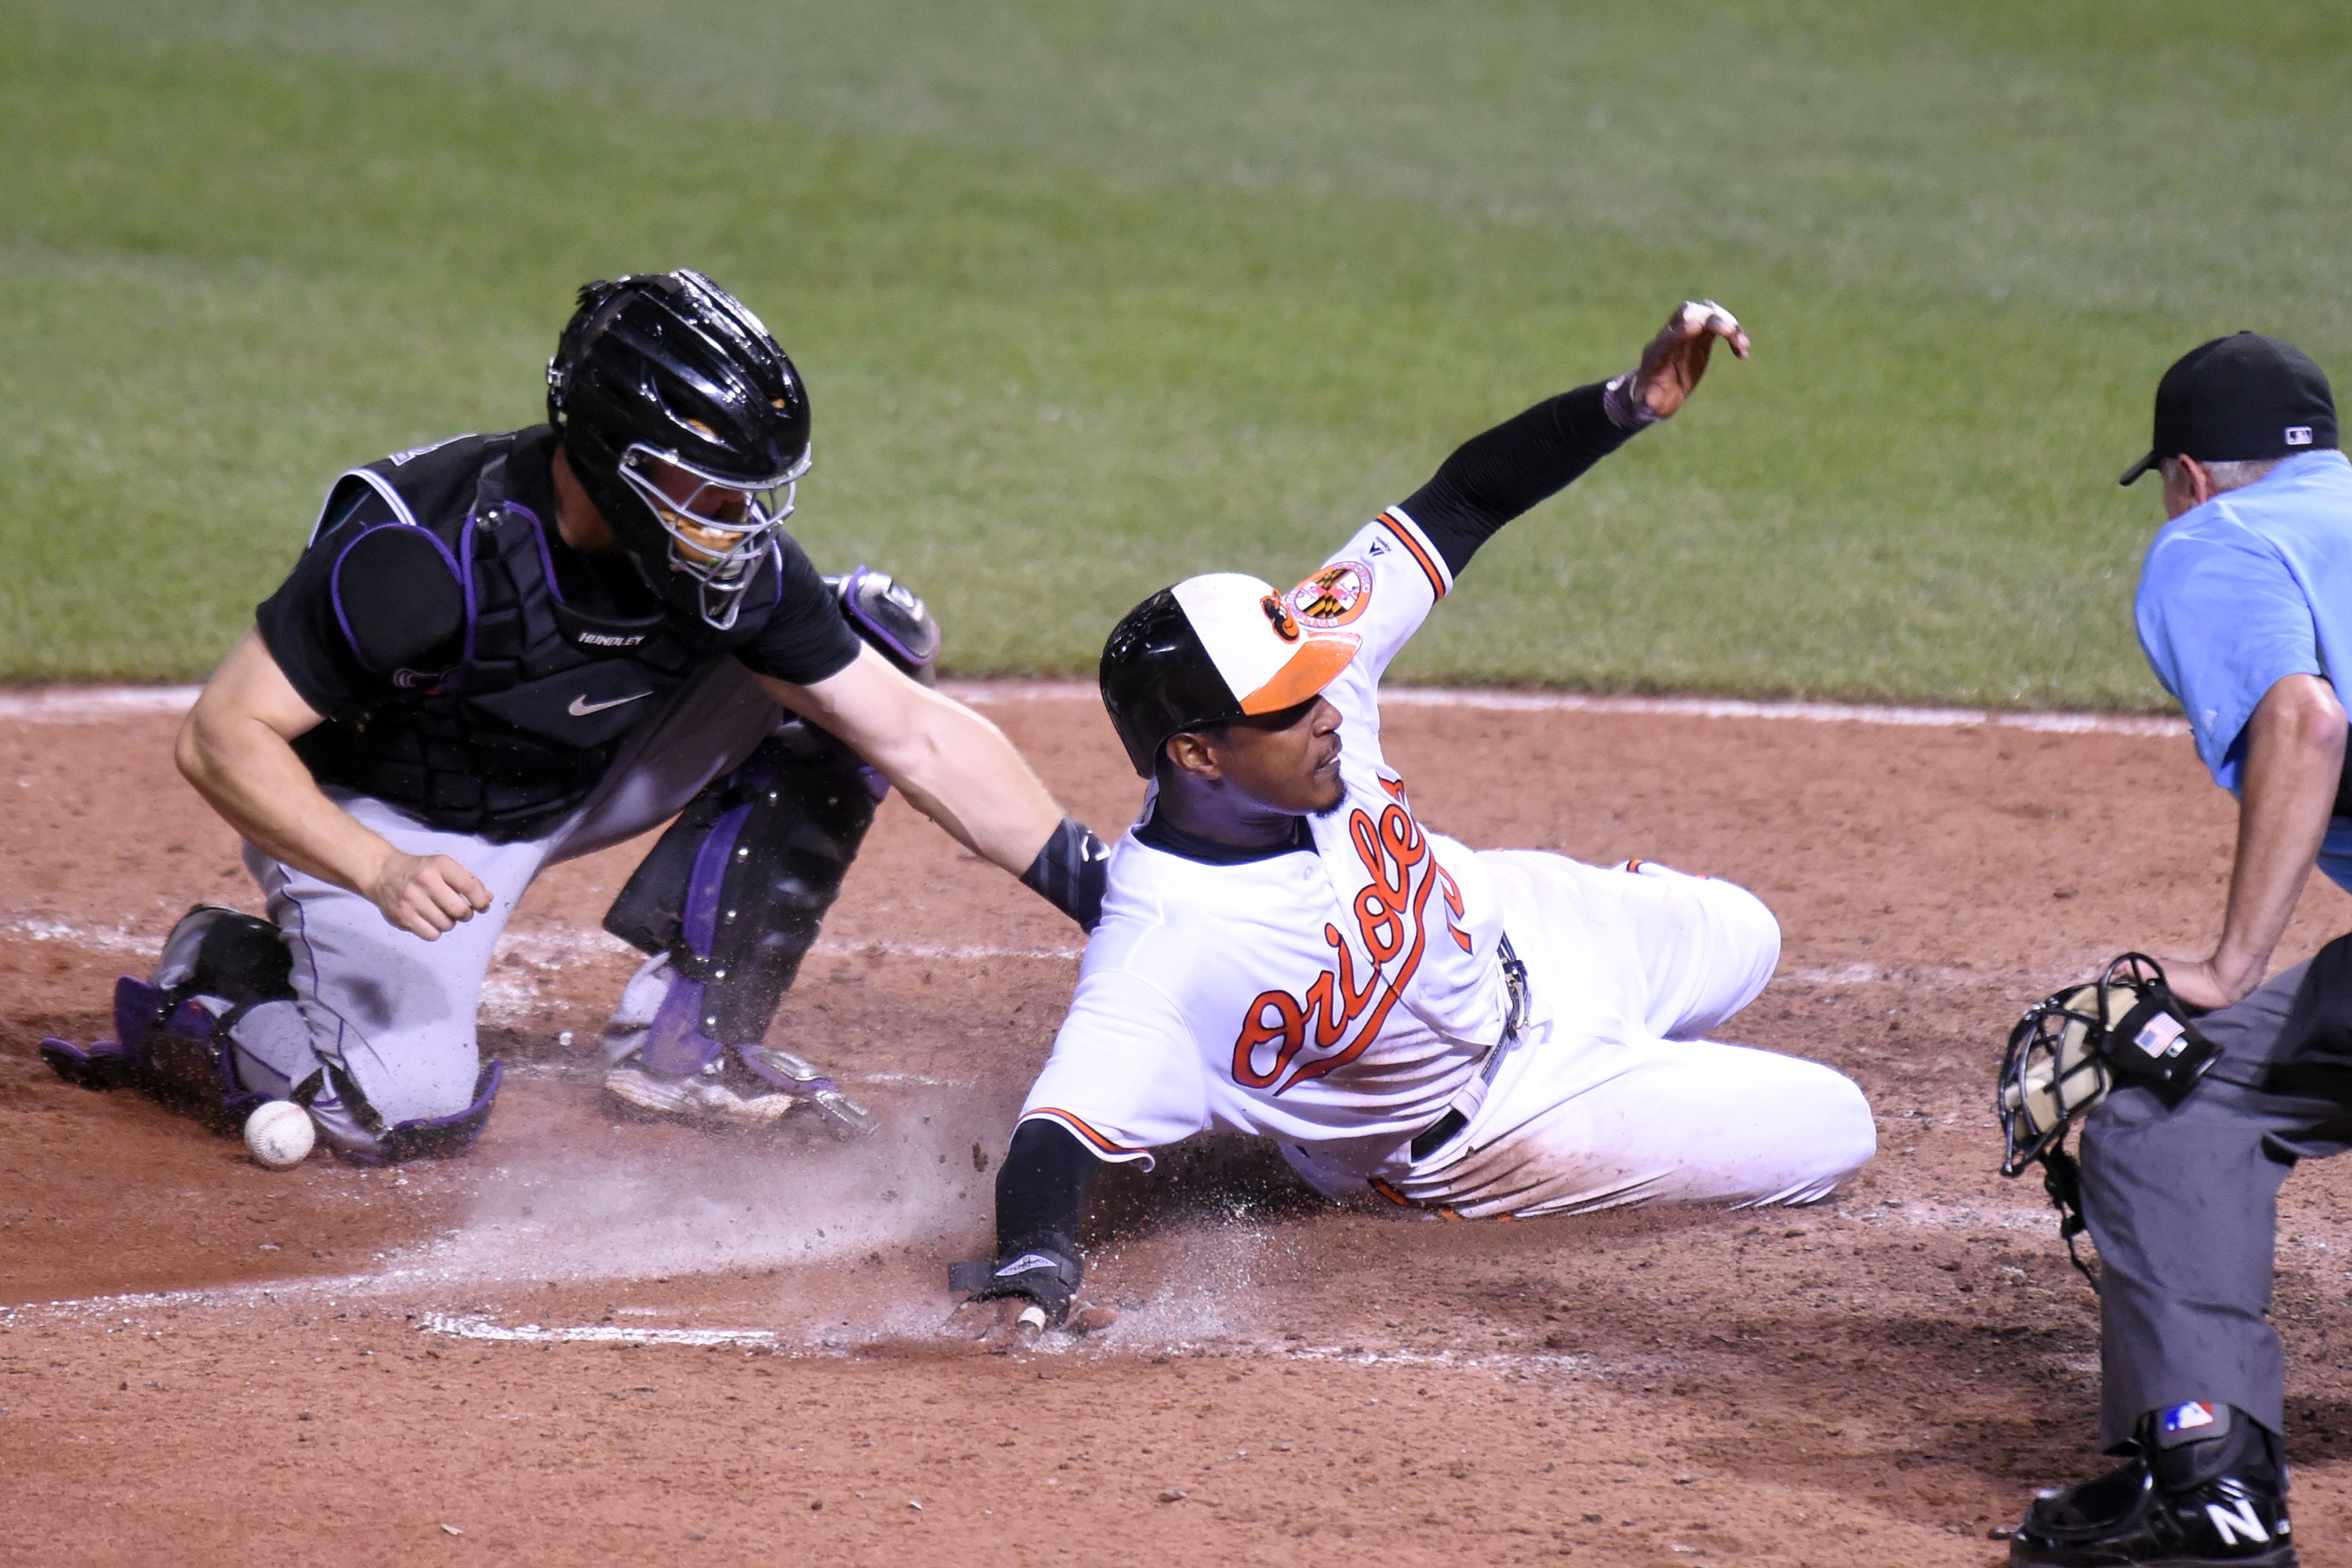 Adam Jones #10 of the Baltimore Orioles beats the tag from Nick Hundley #4 of the Colorado Rockies fromm the winning run during a baseball game at Oriole Park at Camden Yards on July 25, 2016 in Baltimore, Maryland. The Orioles won 3-2 in 10 inning. (Photo by Mitchell Layton/Getty Images)